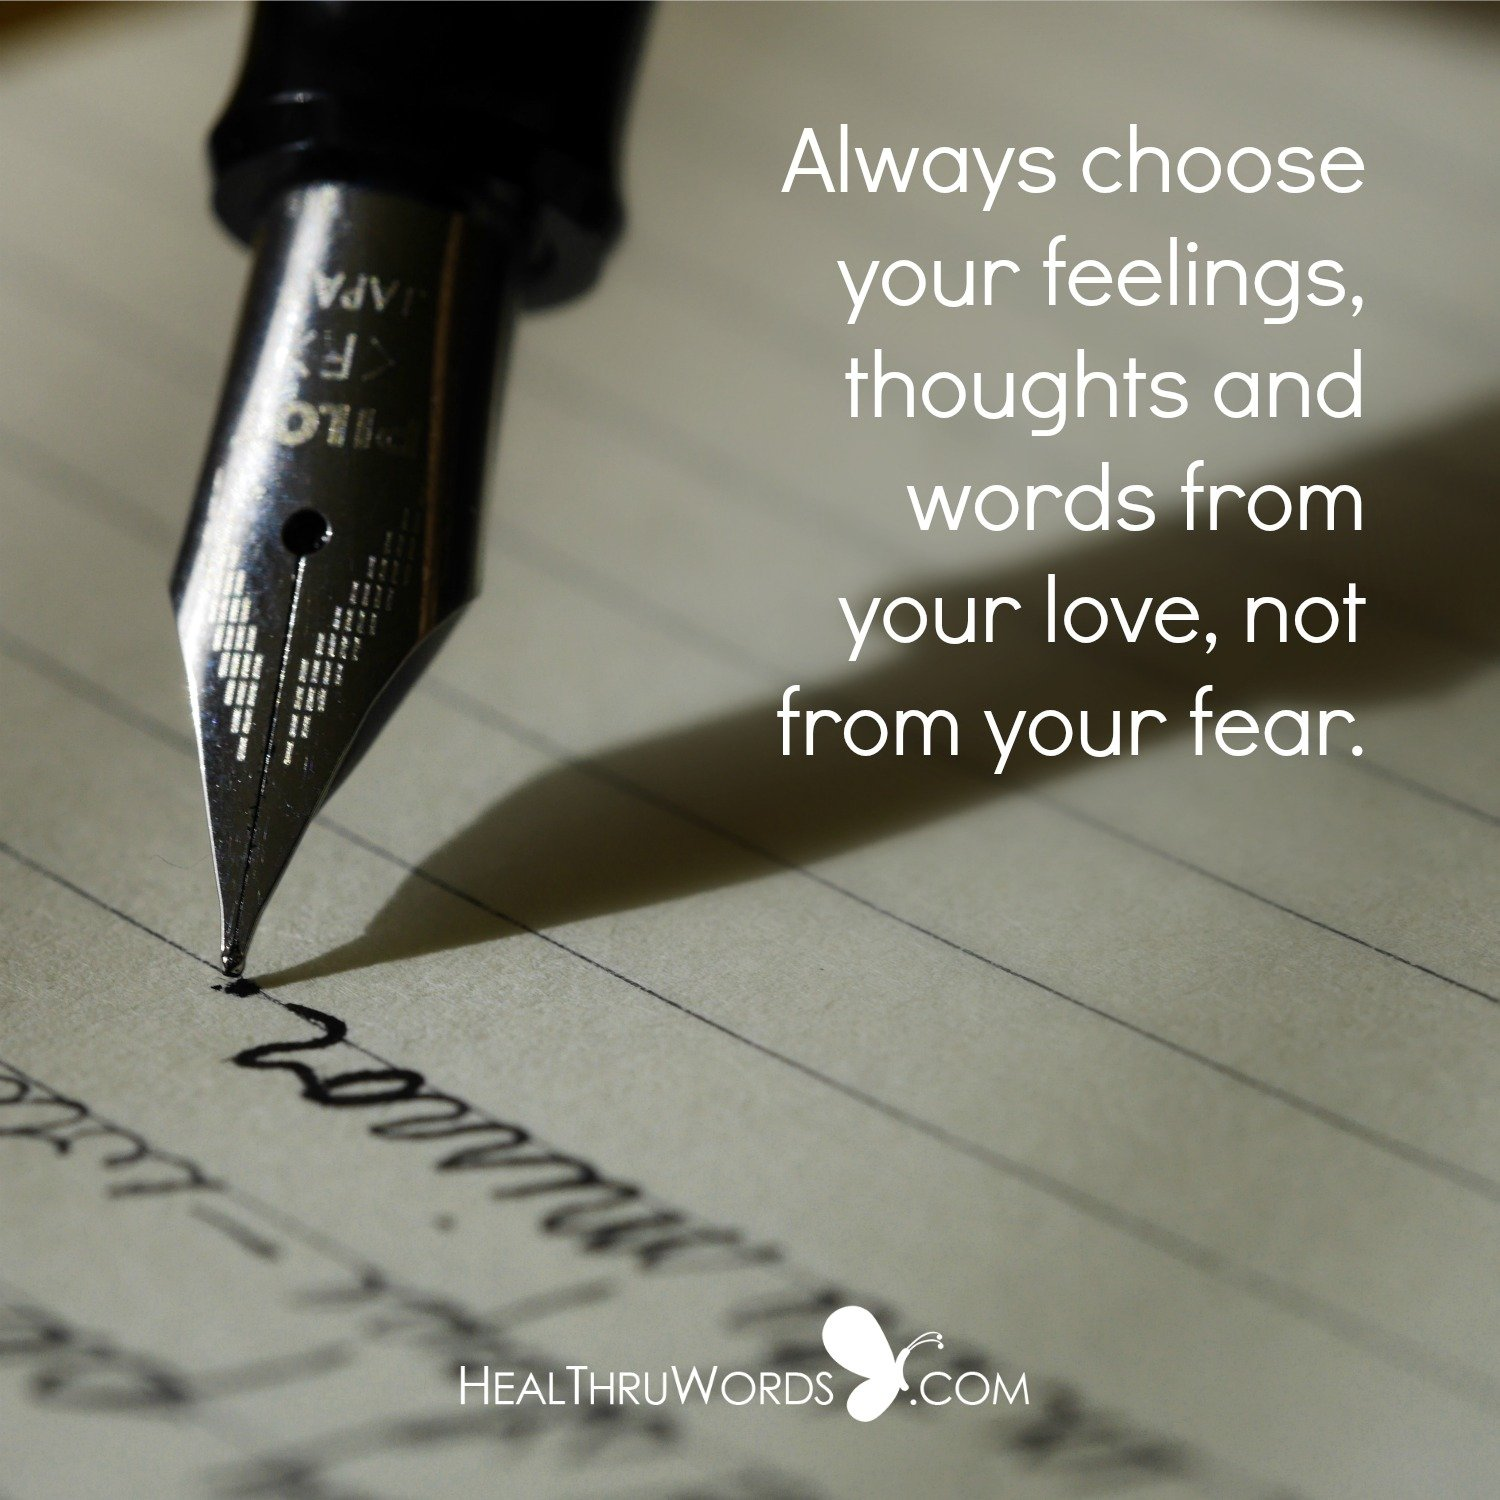 Inspirational Image: Choosing From Love